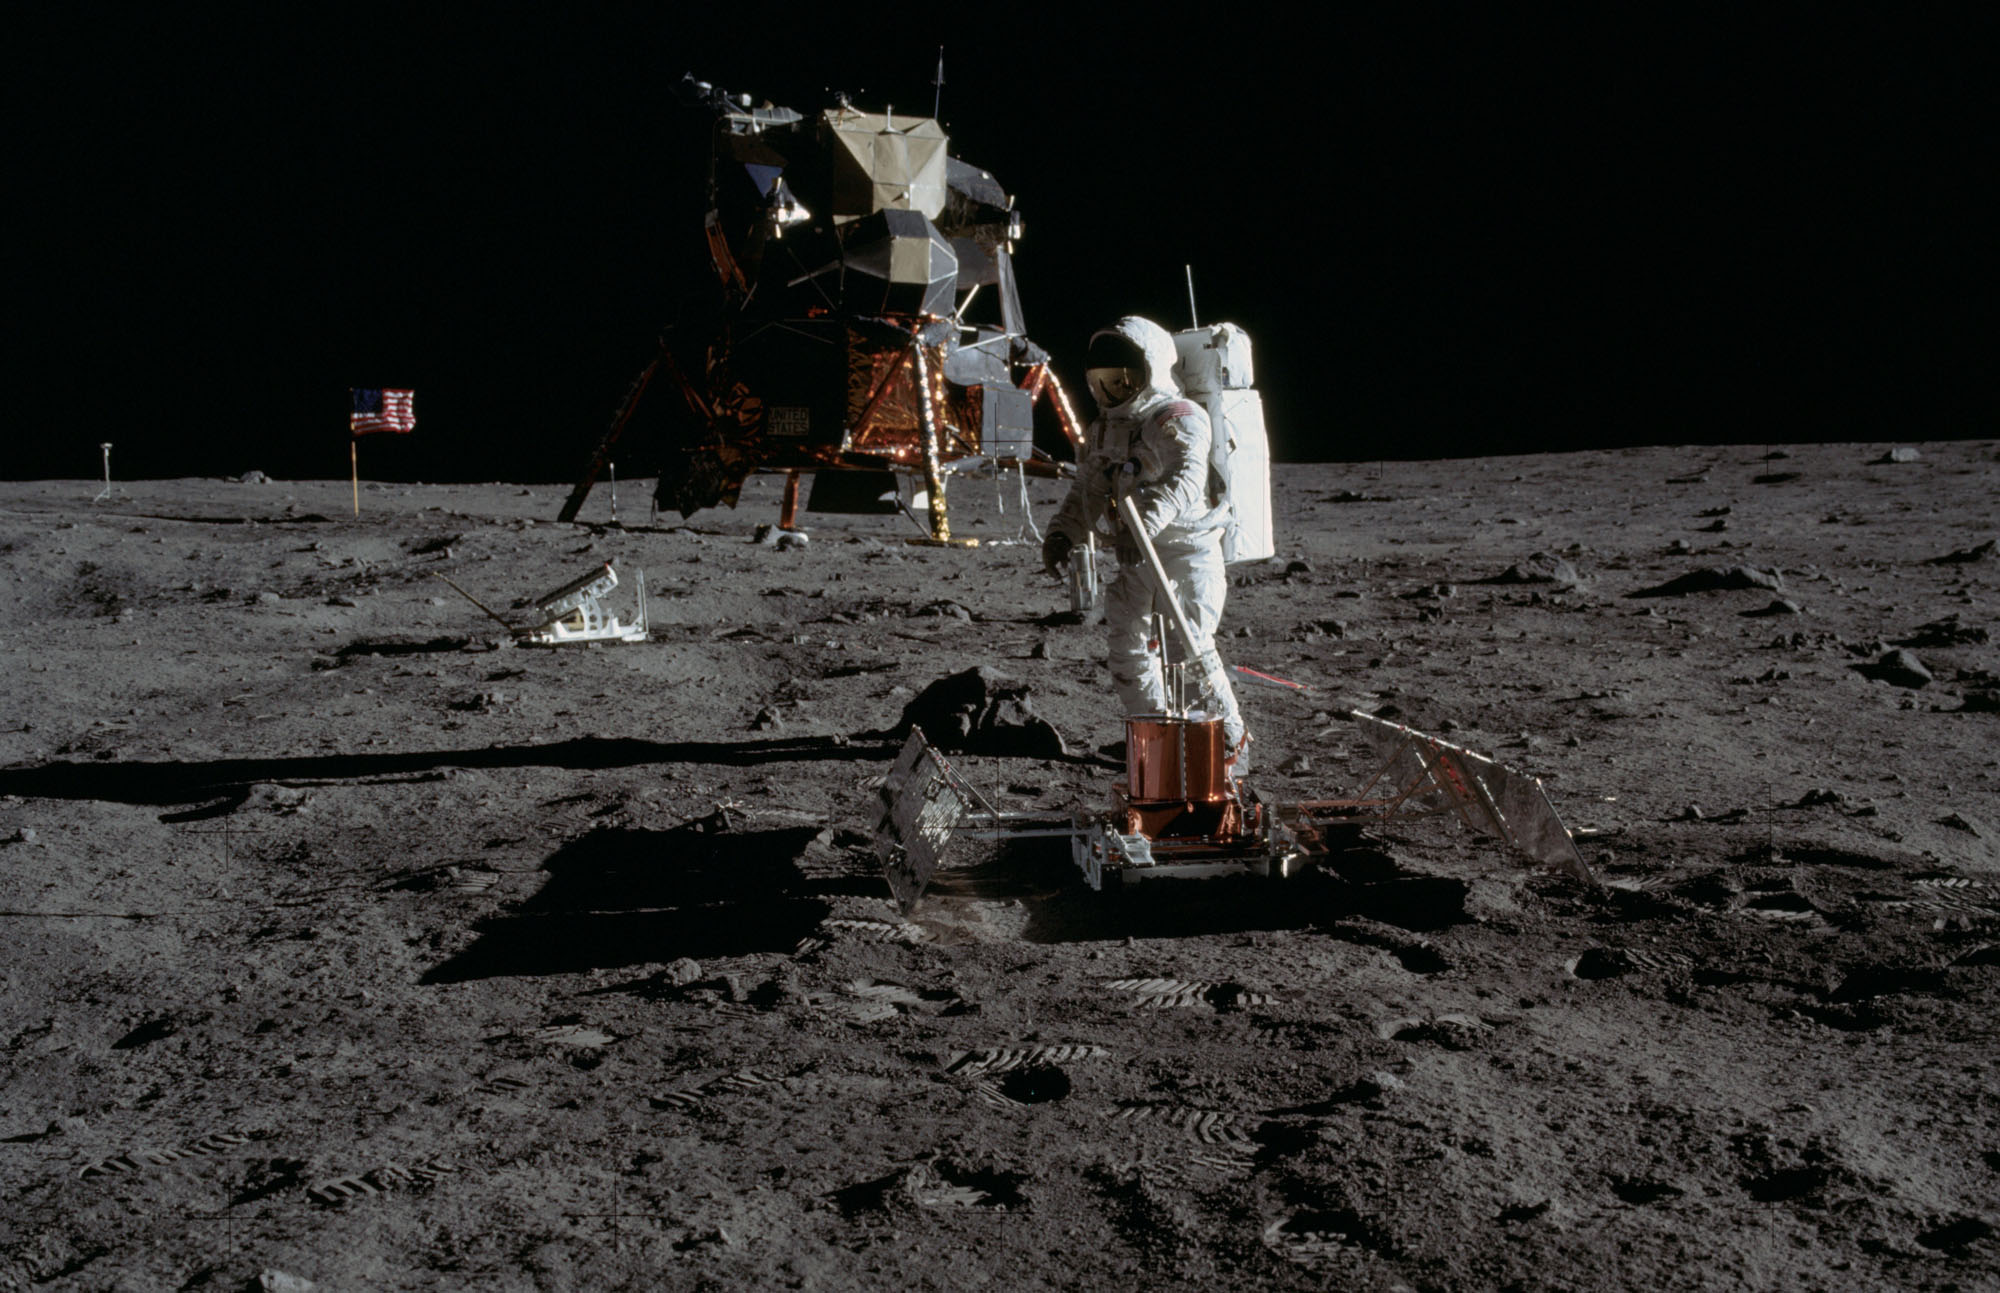 Apollo 11 astronaut Buzz Aldrin sets up the Early Apollo Scientific Experiments Package in this photo by Apollo 11 commander Neil Armstrong on July 20, 1969 after their historic moon landing.